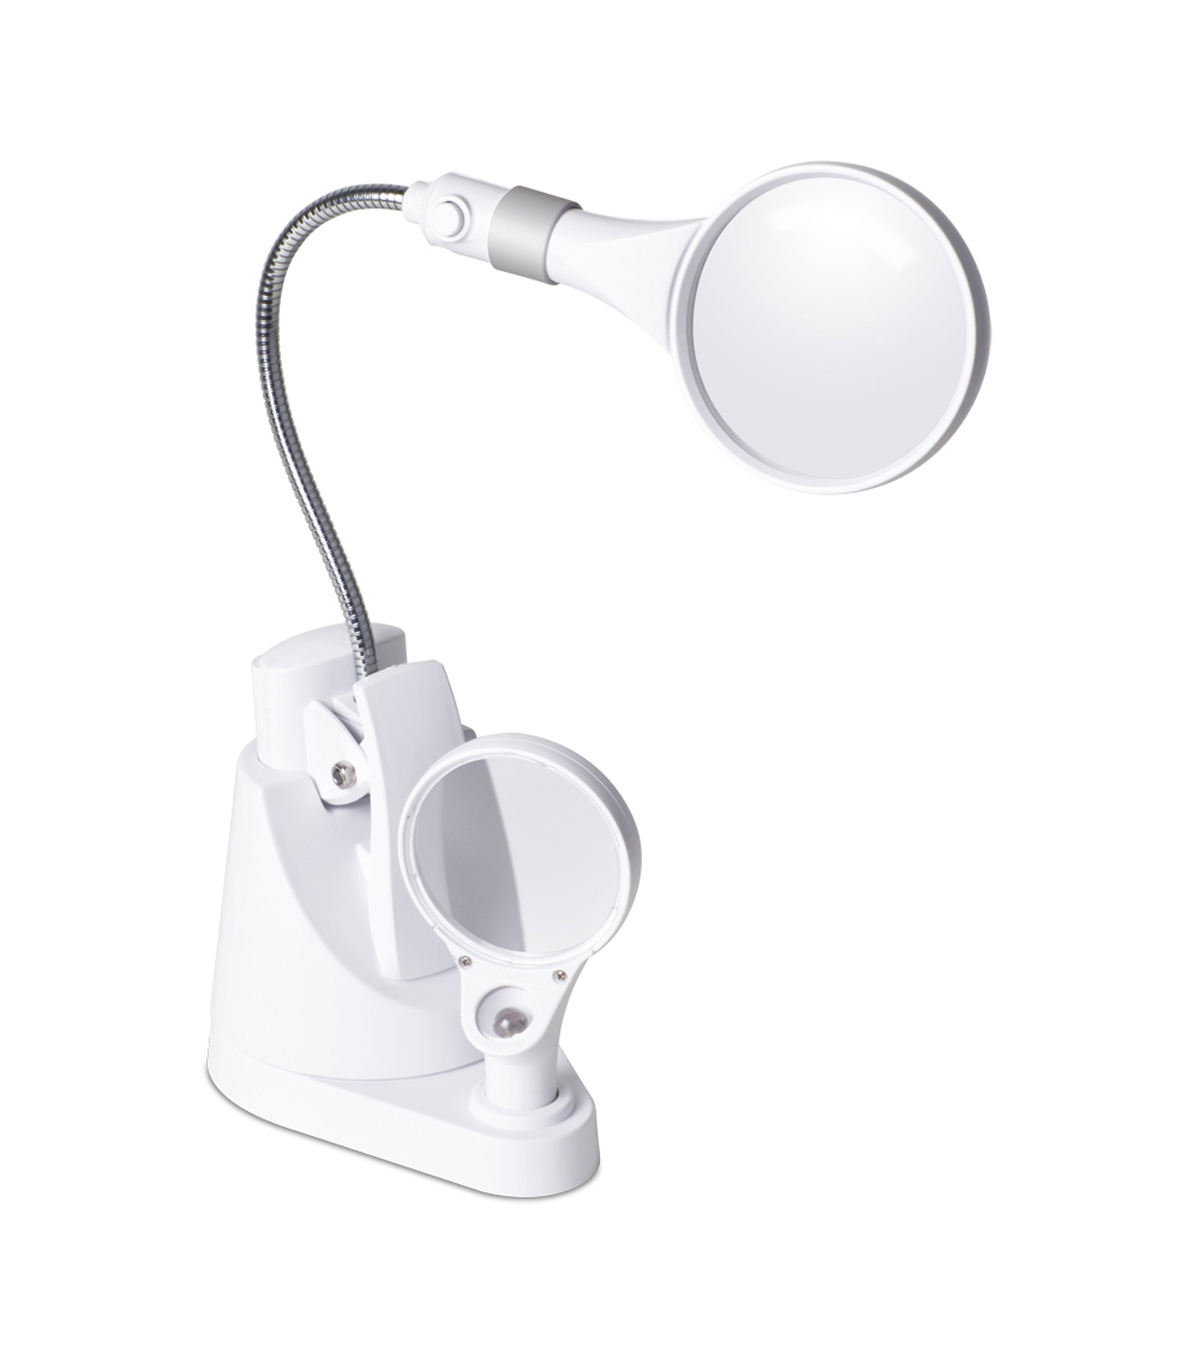 Ottlite 6X And 3X Led Magnifier Lamp With Base - OttLite LED Magnifier Lamp - 6X And 3X JOANN